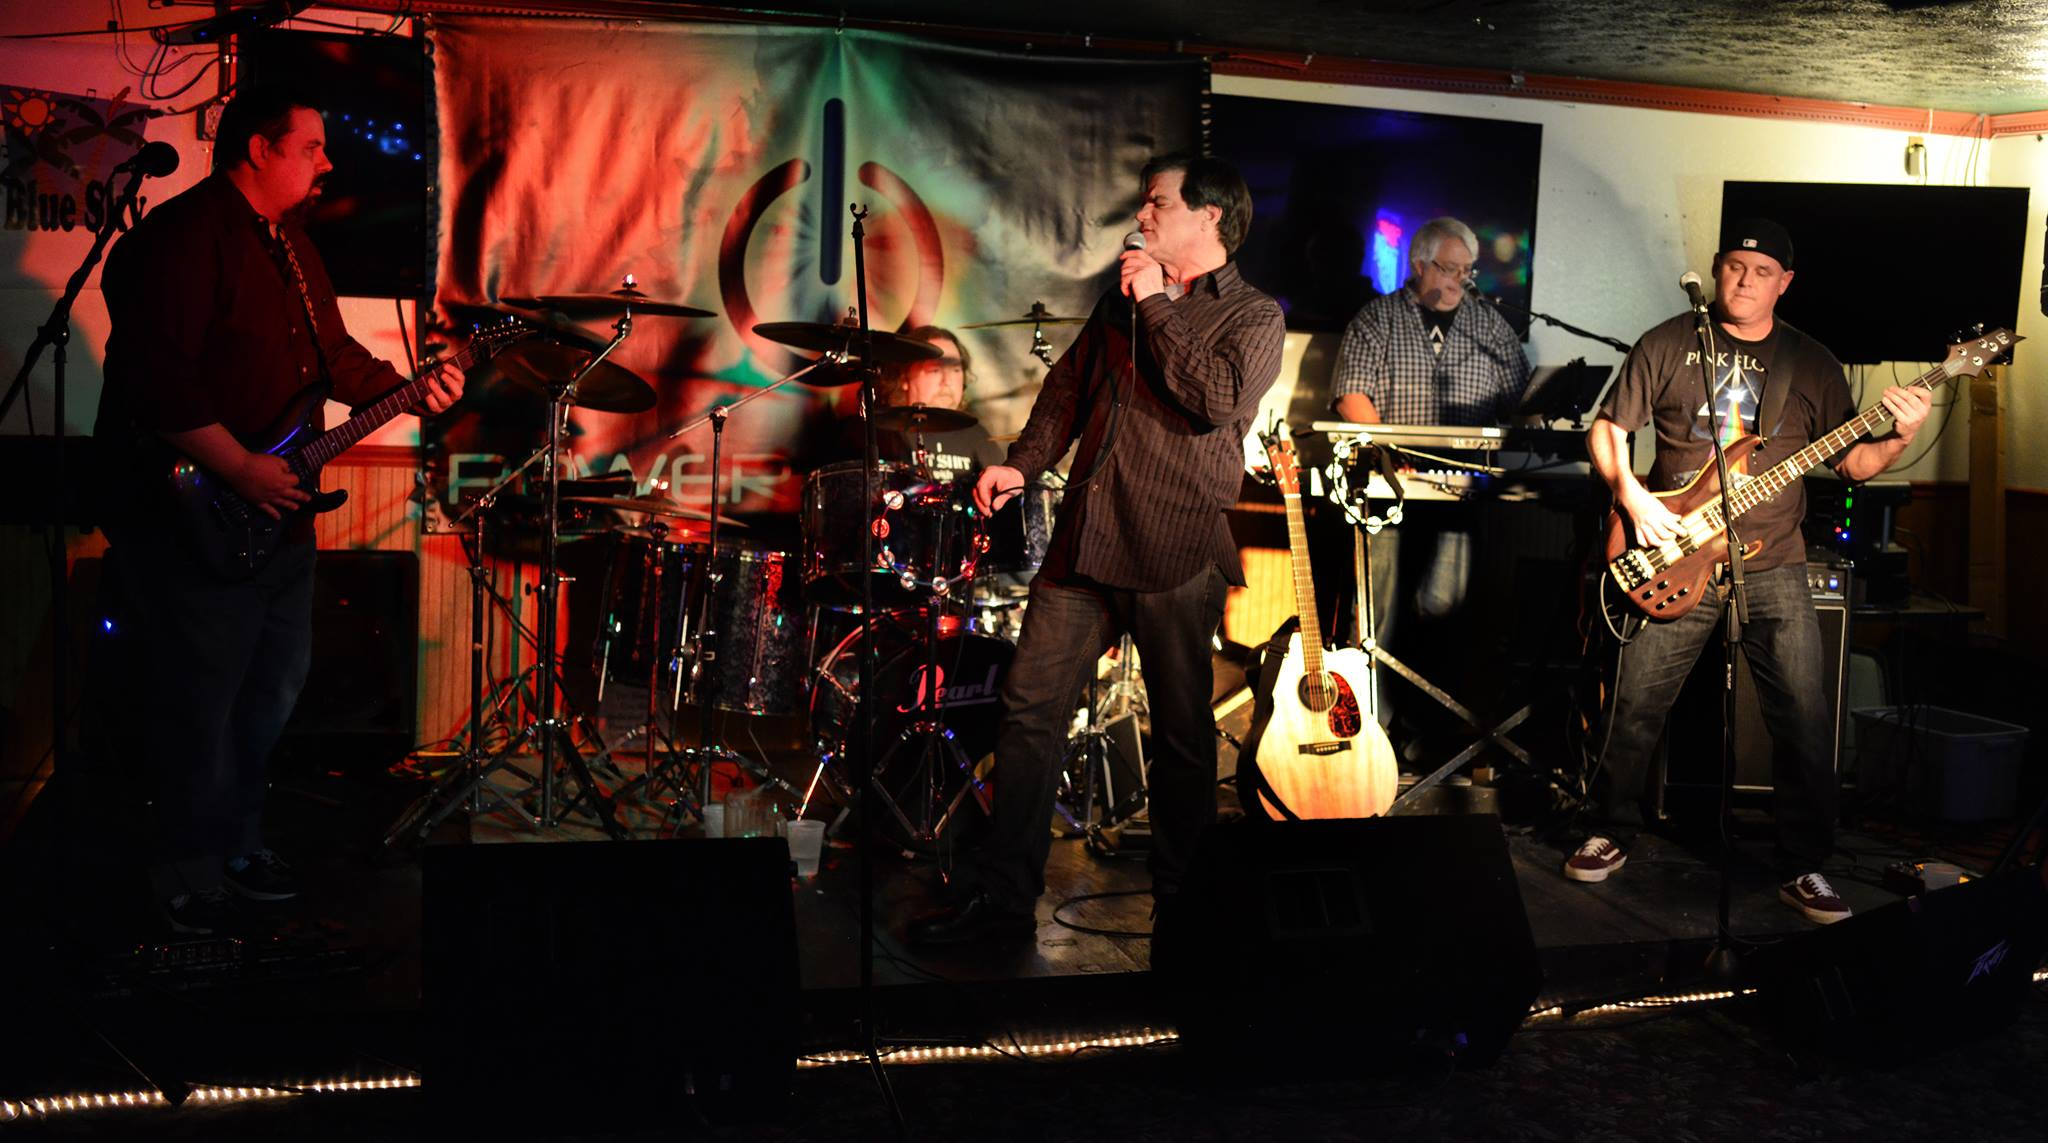 Power Project on stage at Blue Sky Bar & Grille